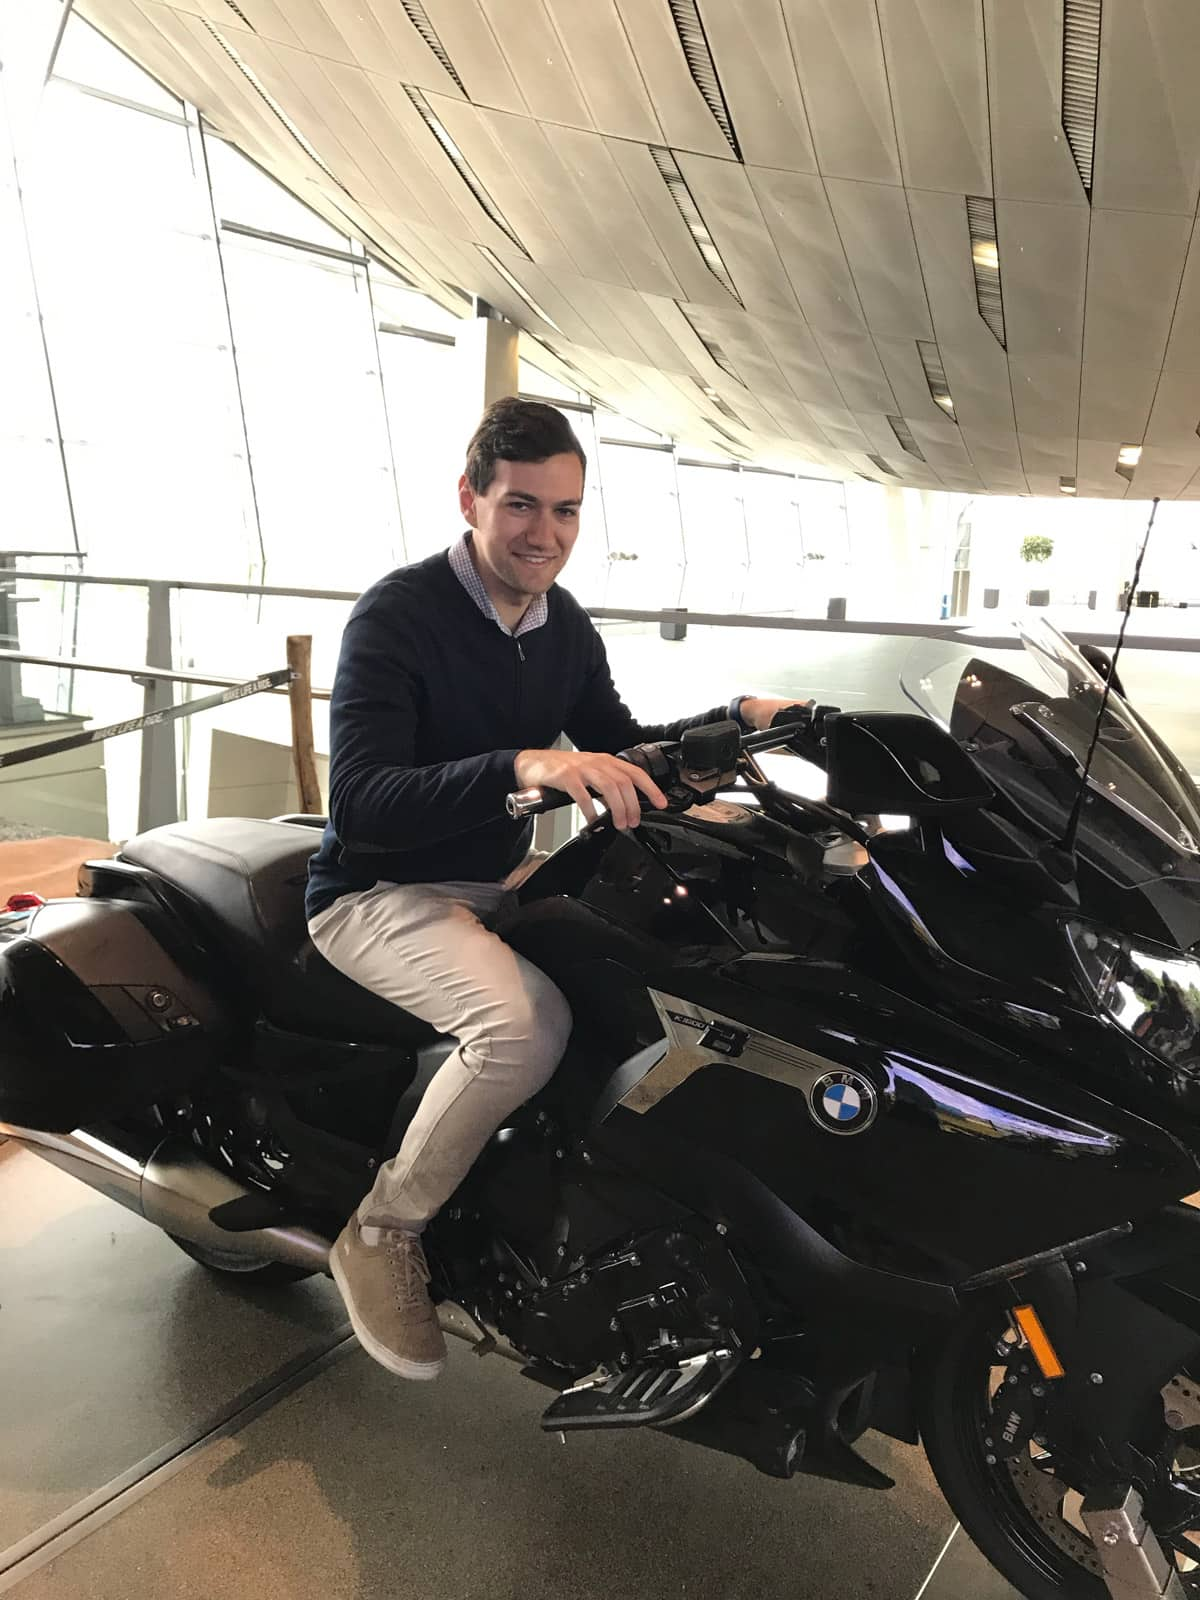 A man in a dark sweater and beige pants sitting on a motorbike in a museum